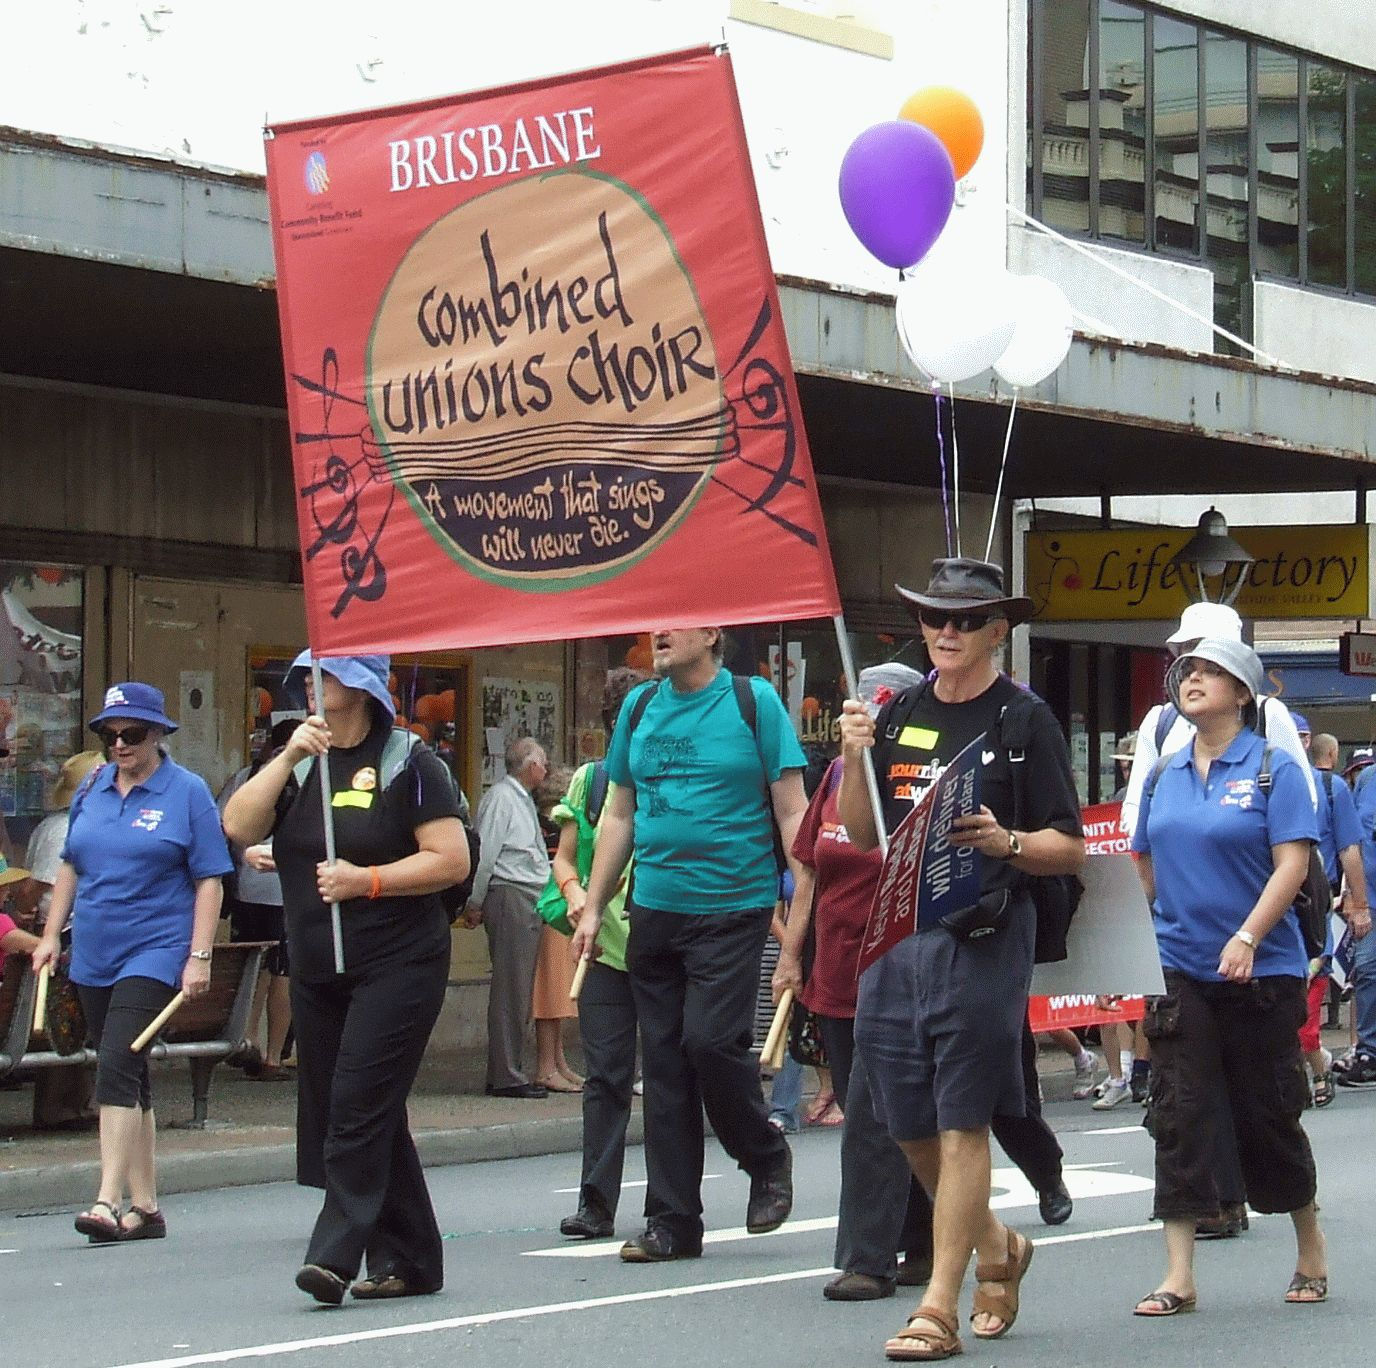 What date is labor day in Brisbane